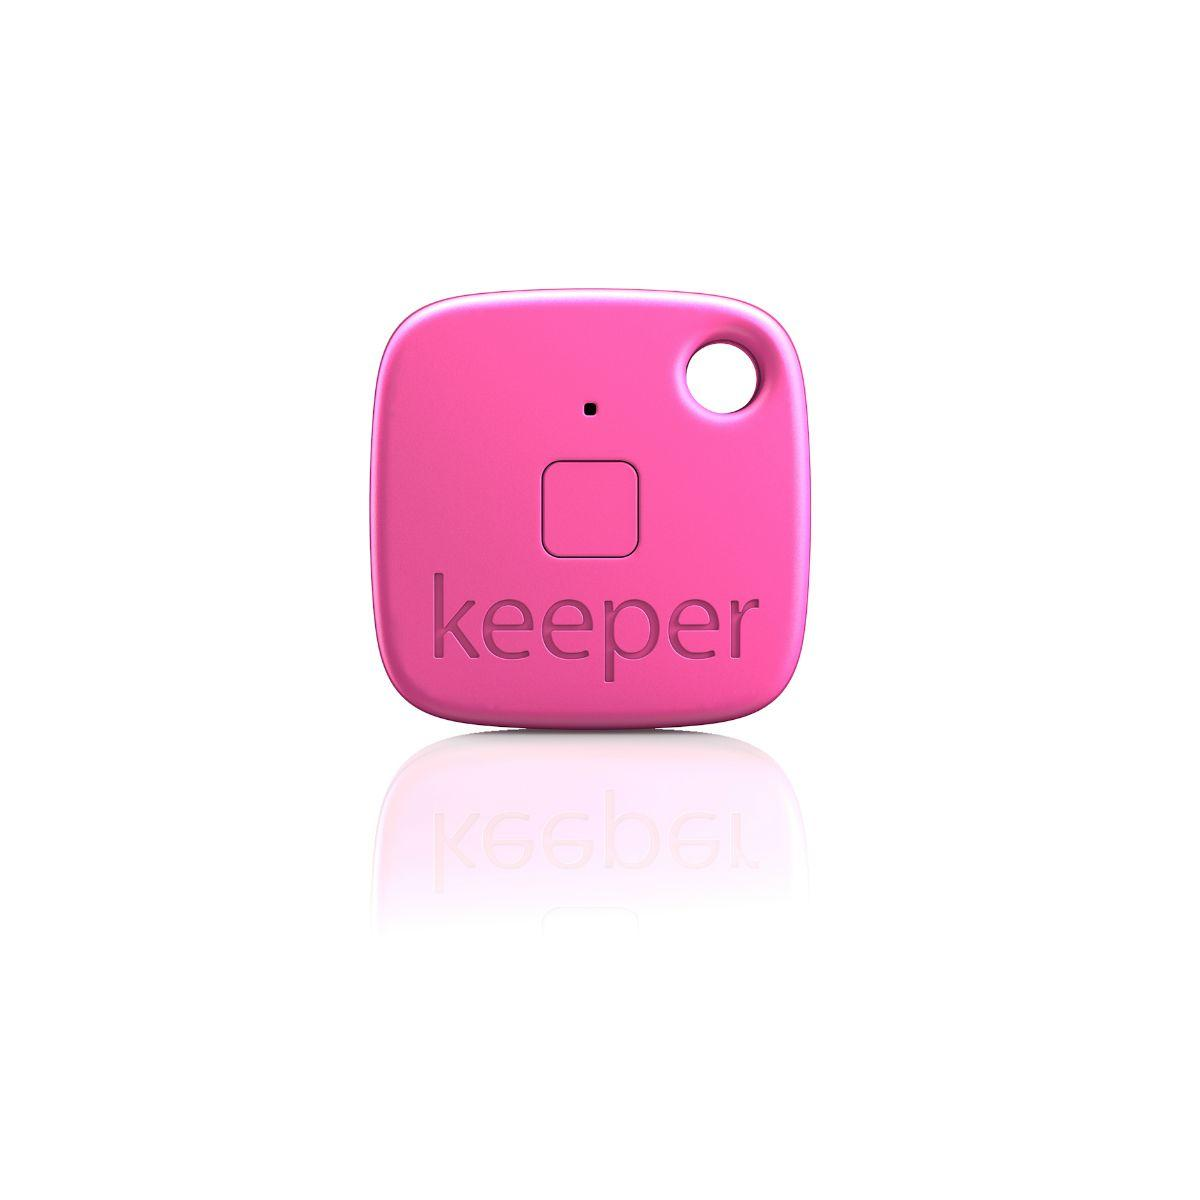 Porte cl� connect� gigaset keeper rose solo (photo)